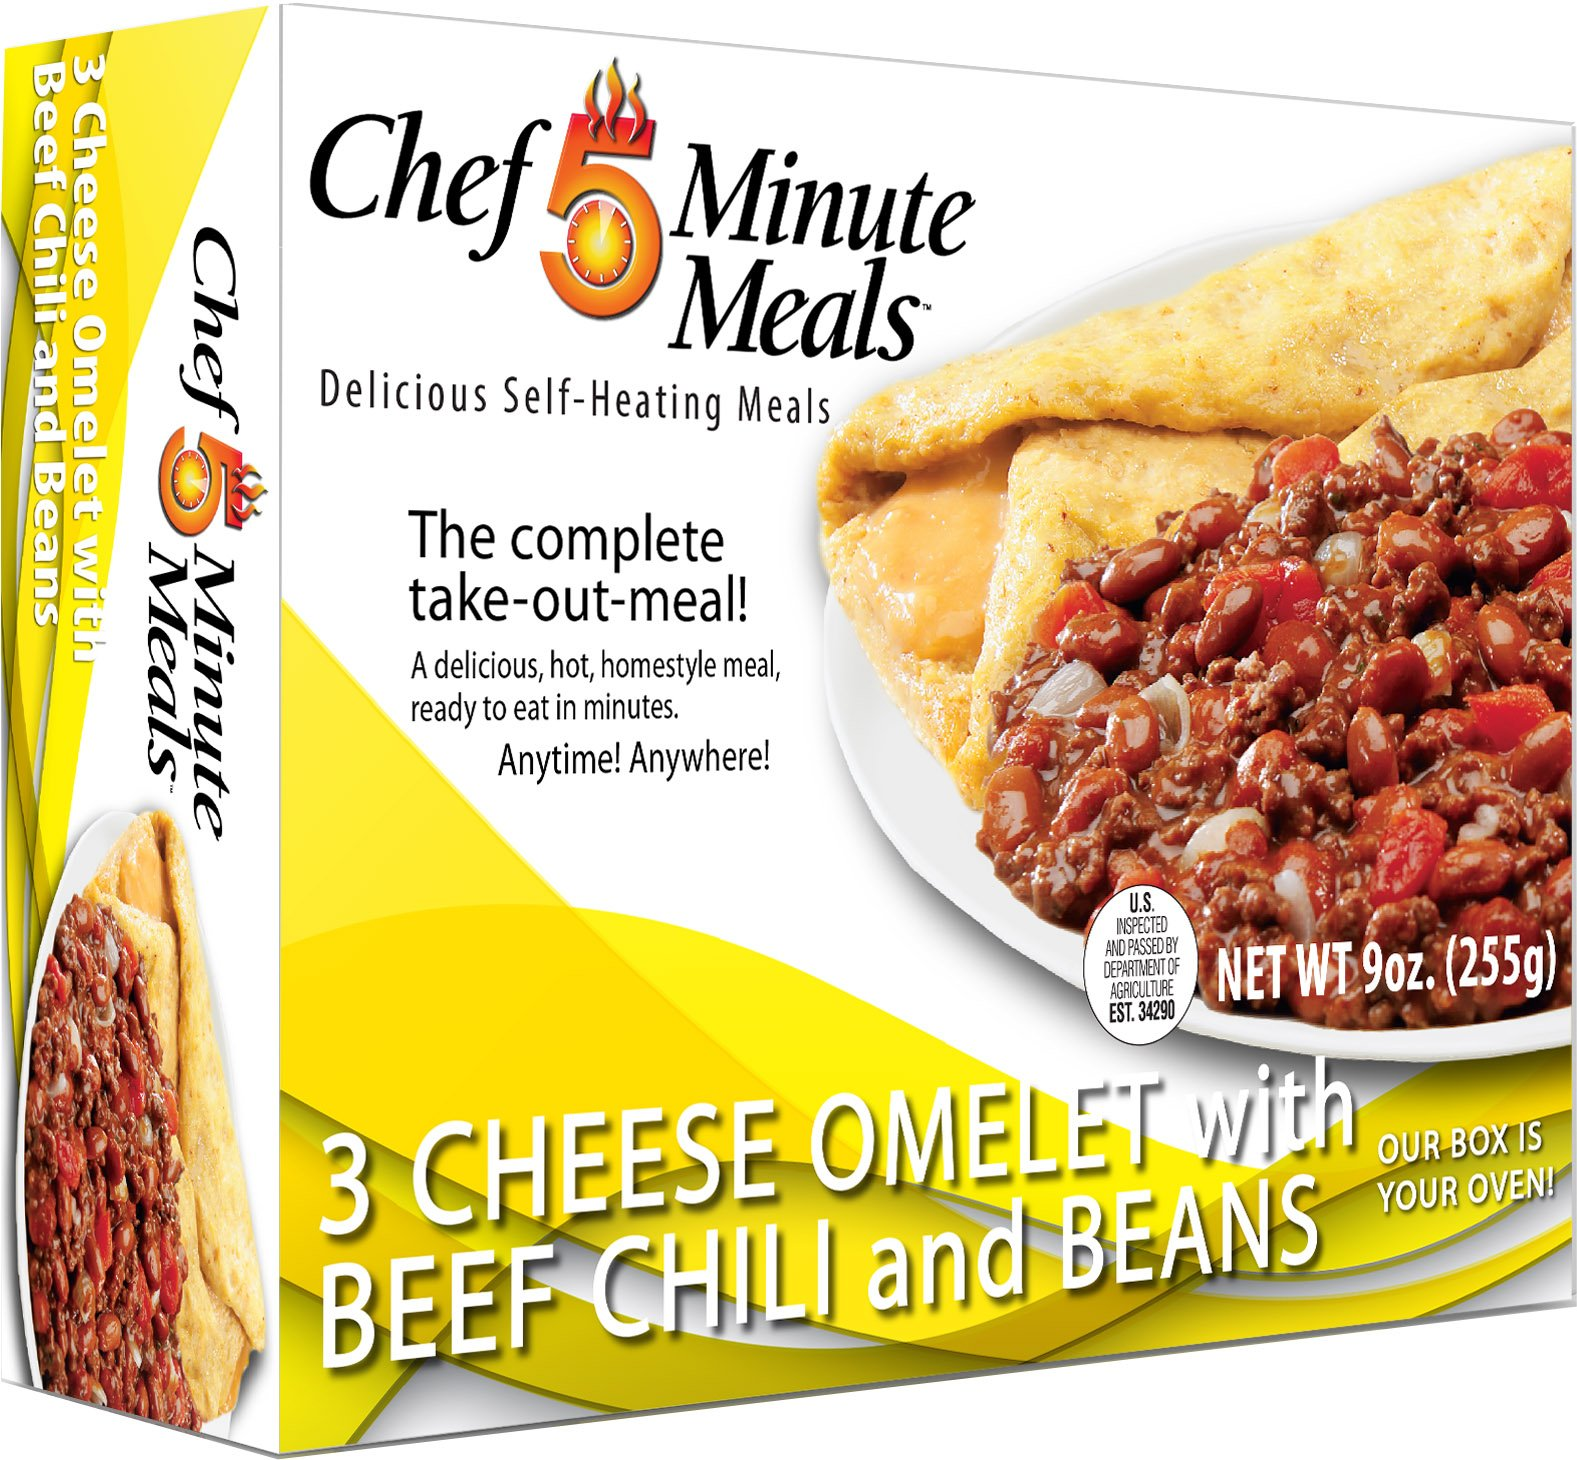 Chef 5 Minute Meals Self Heating Meal Breakfast: 3 Cheese Omelet w/Beef Chili with Beans - Case of 12